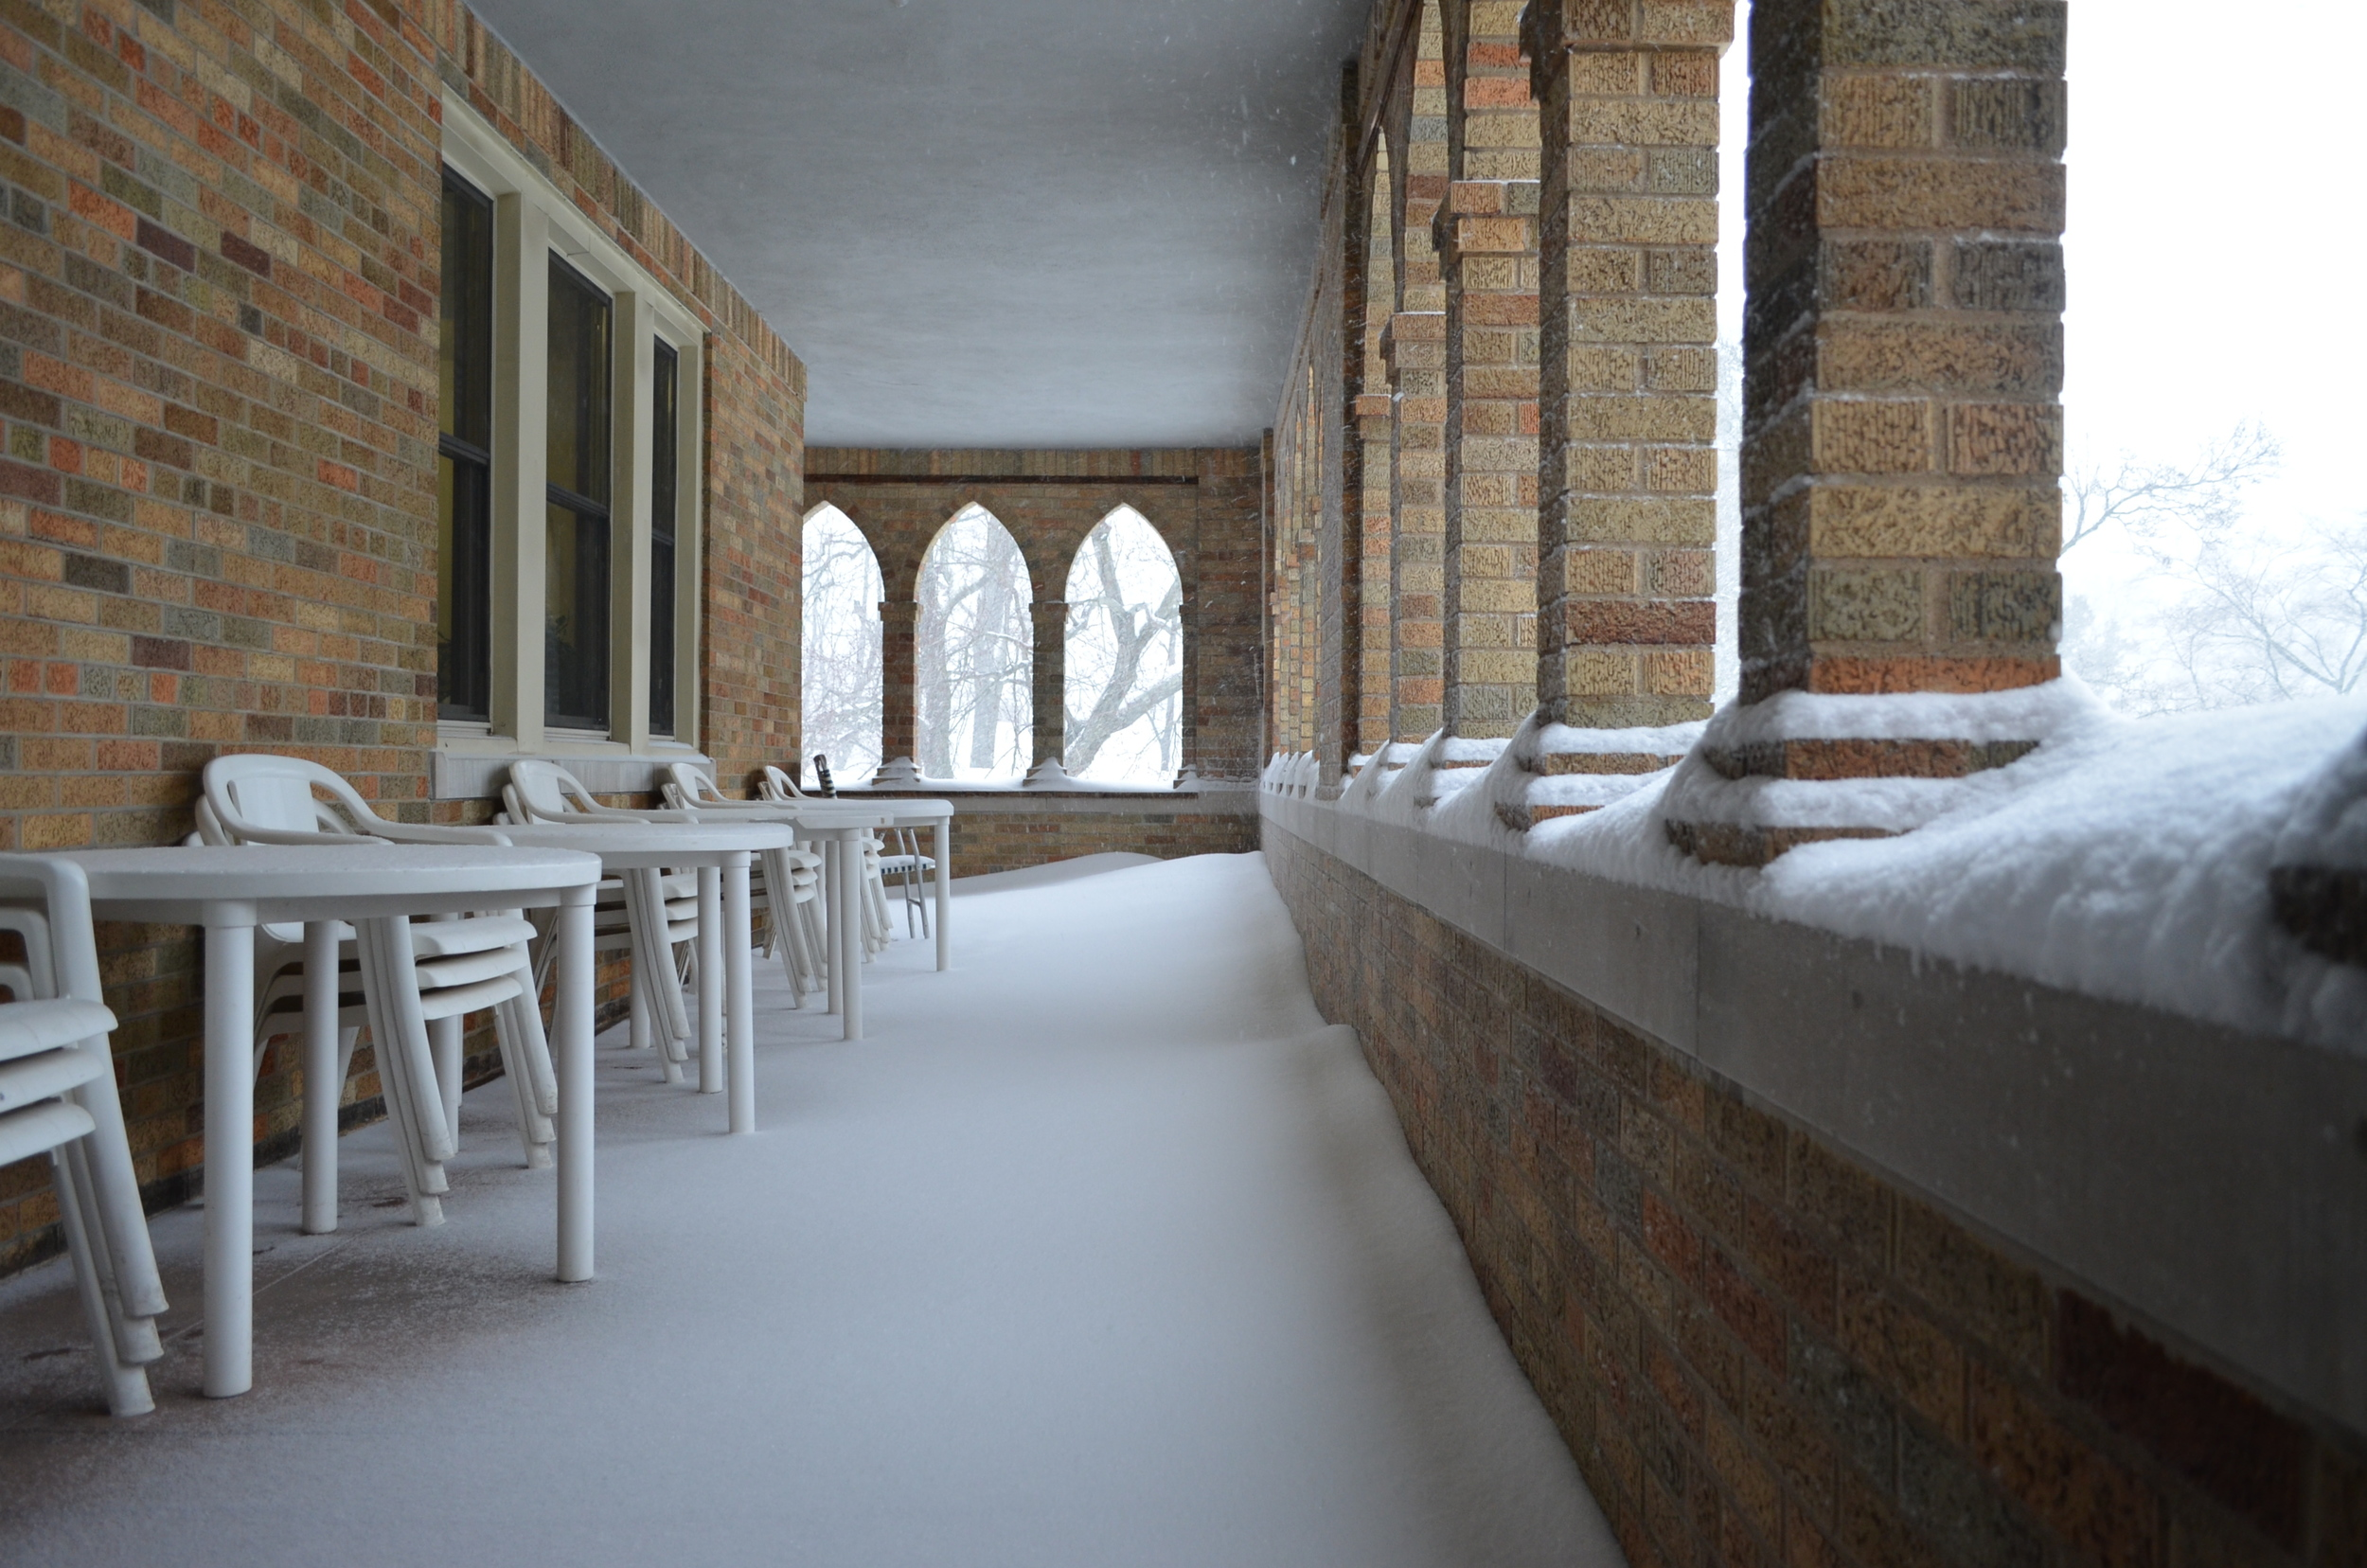 Our picnic tables on the cloister look out of place with all this snow.